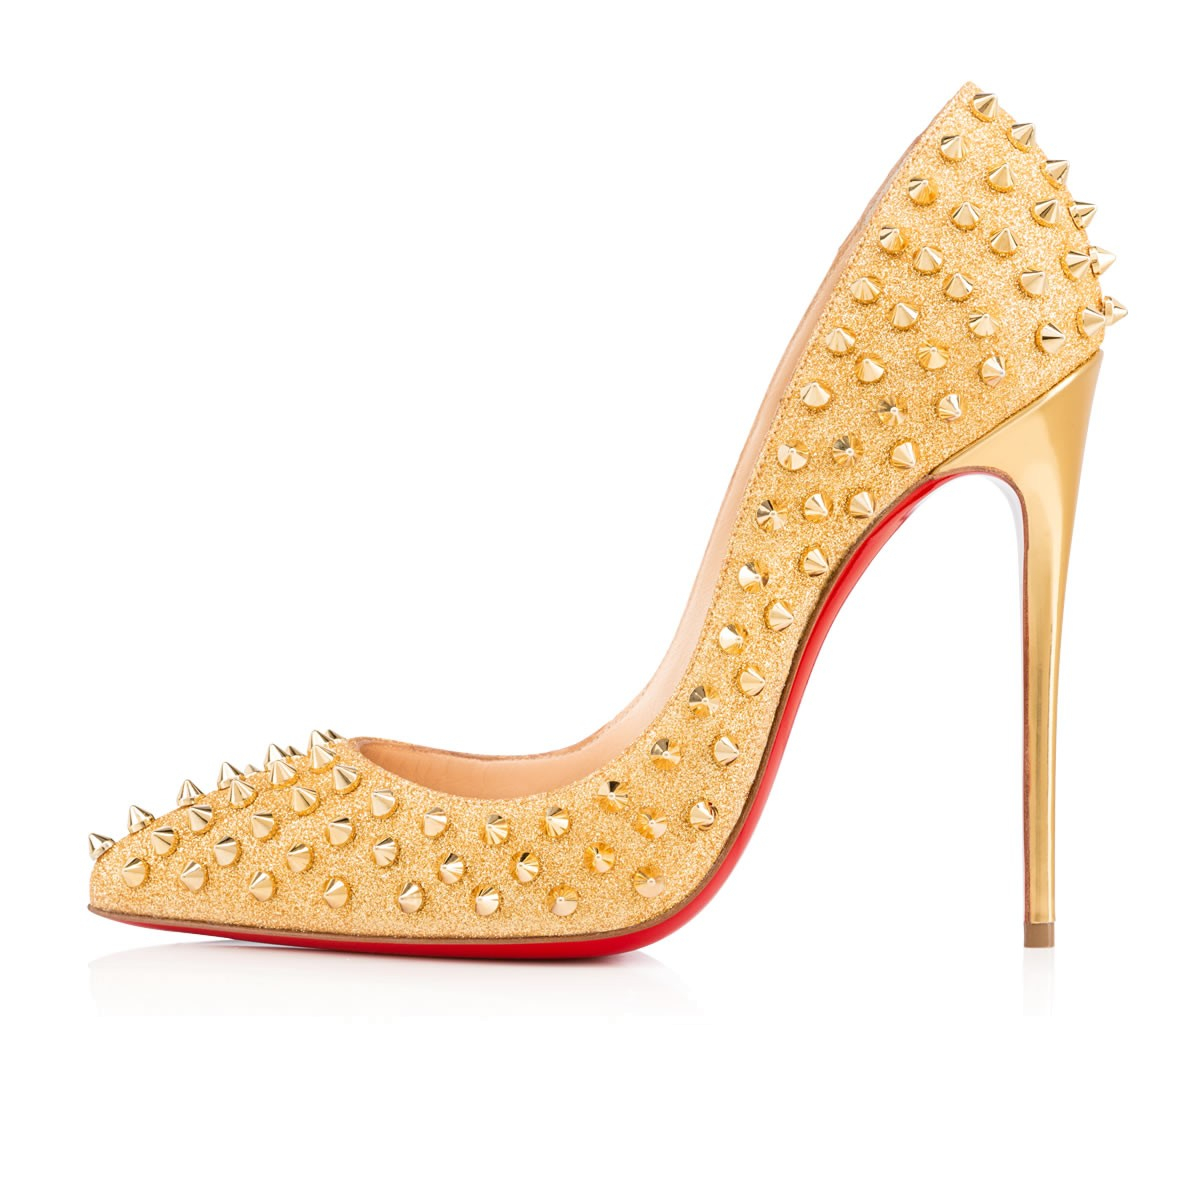 christian louboutins replicas - Christian louboutin Follies Spike-Studded Glitter Red Sole Pump in ...